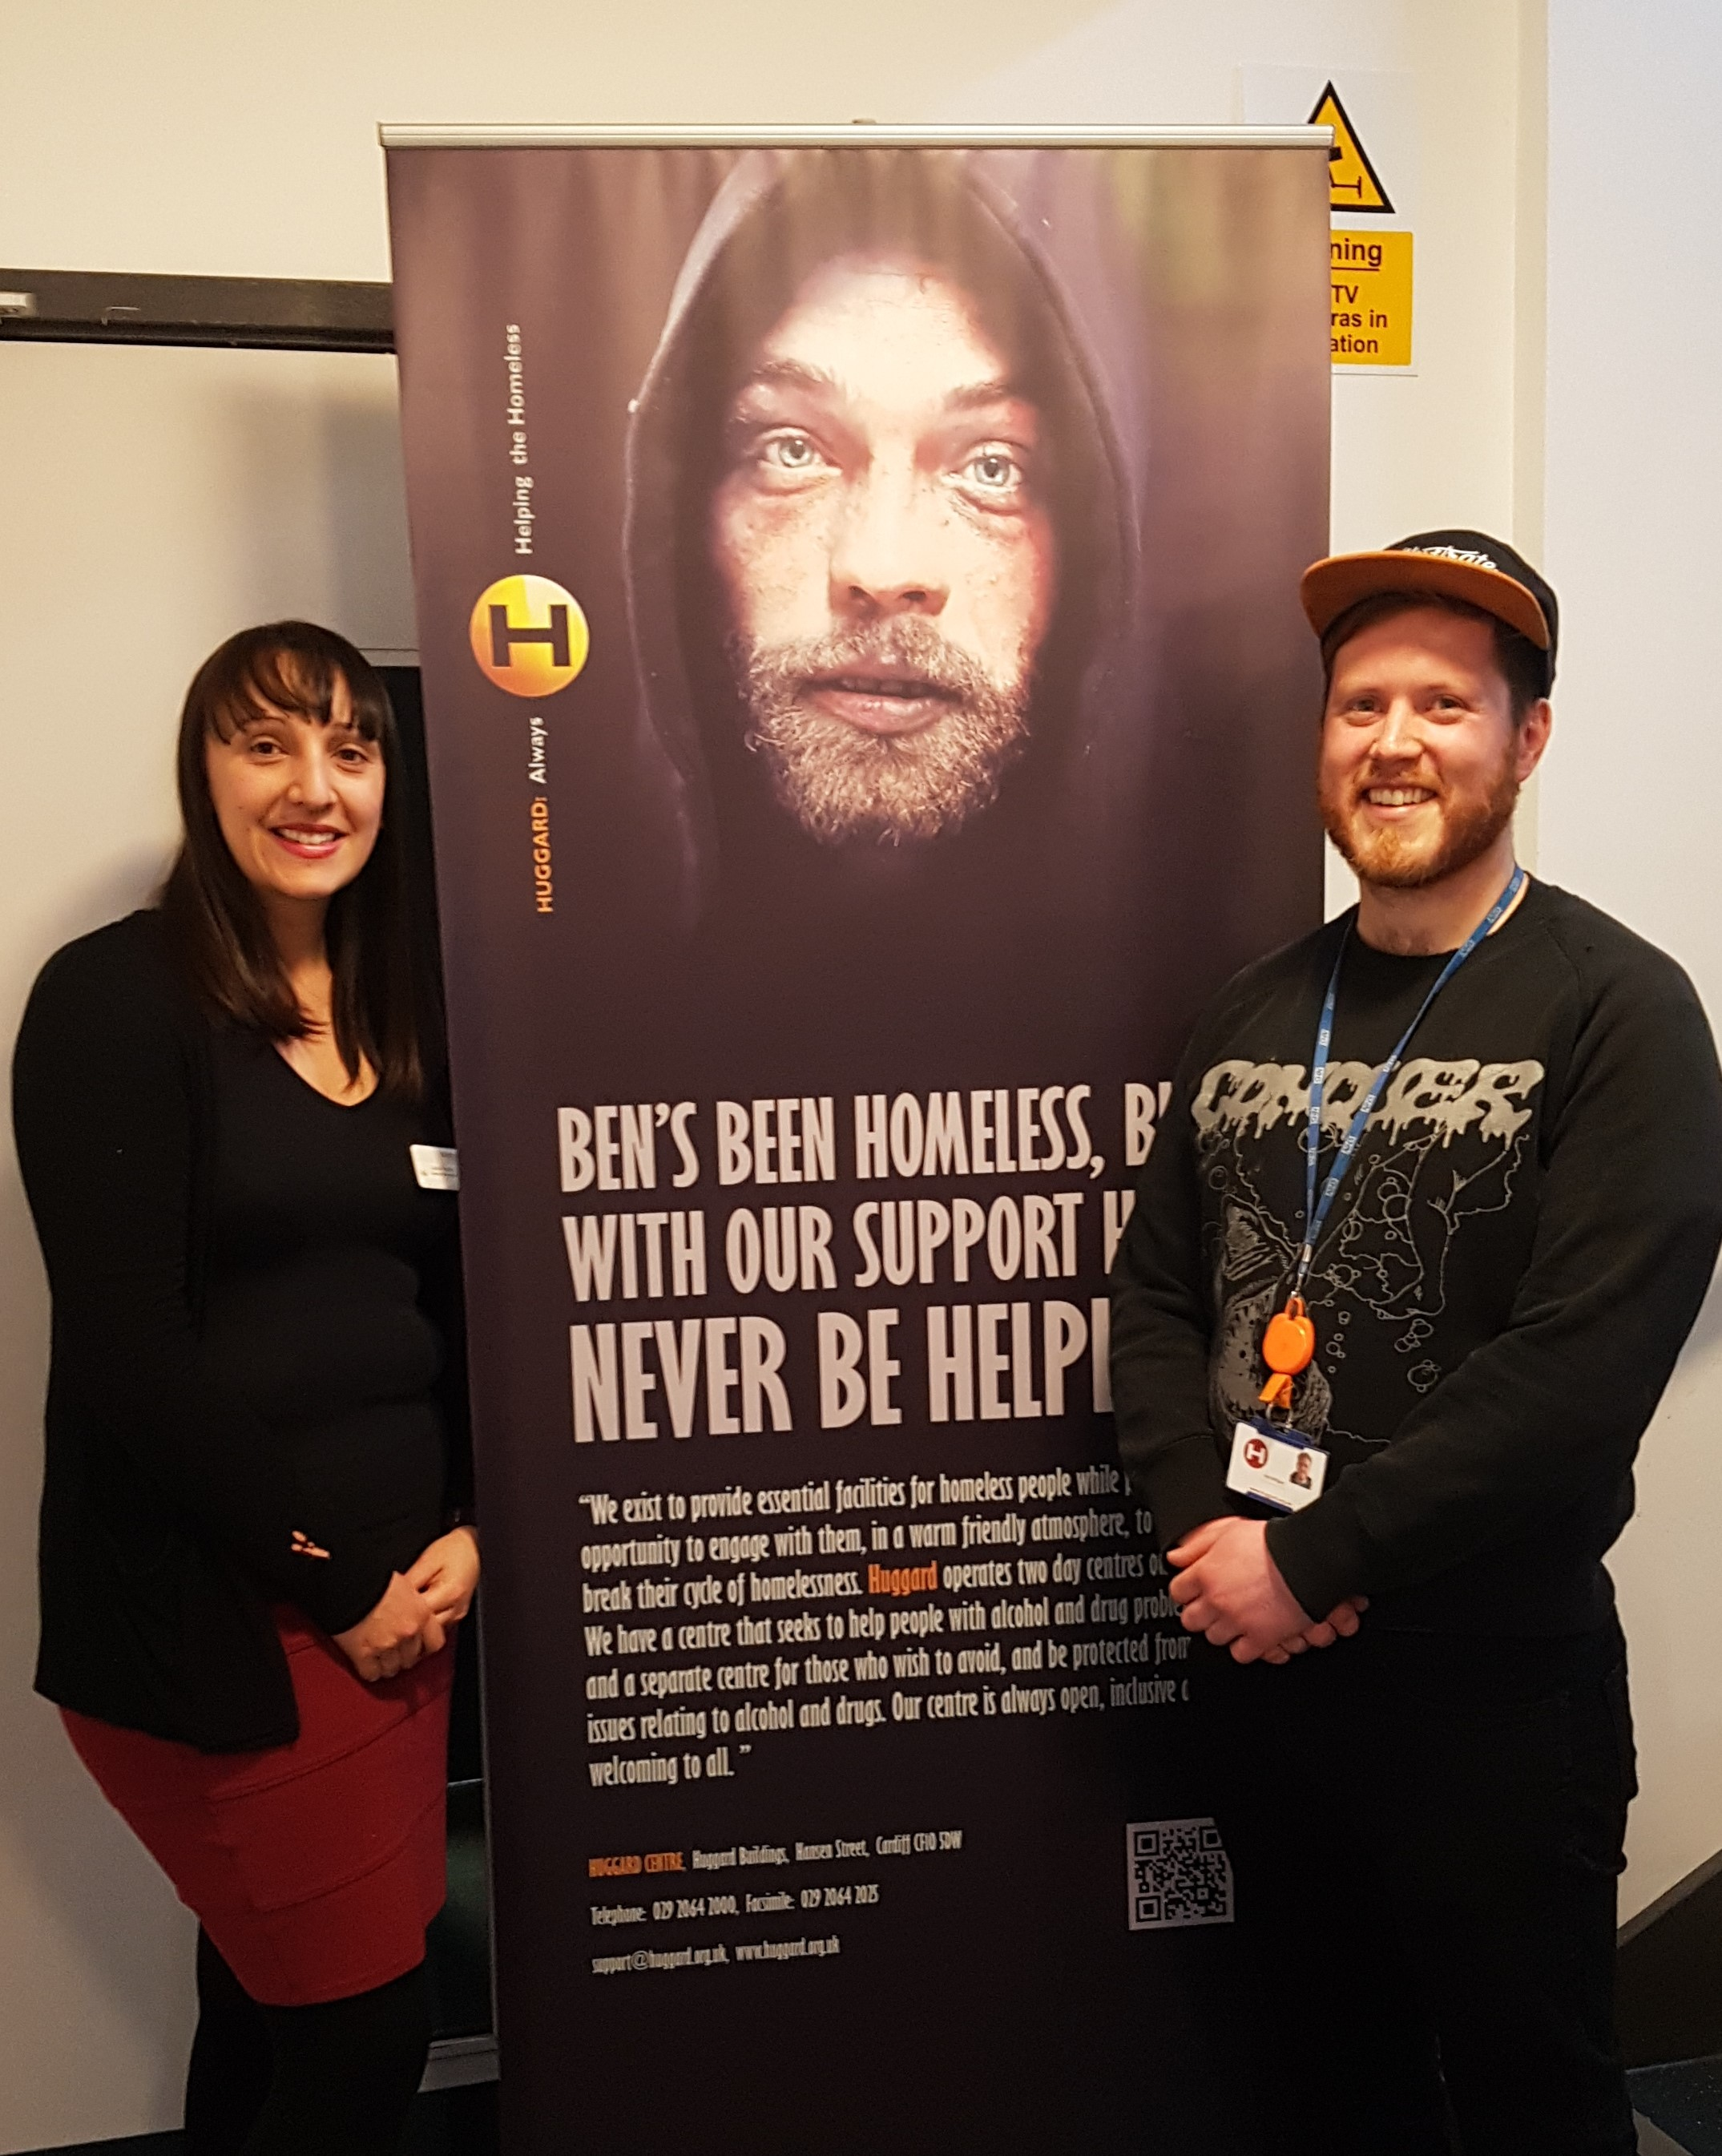 Sleeperz Hotel Cardiff has been fundraising to help the homeless